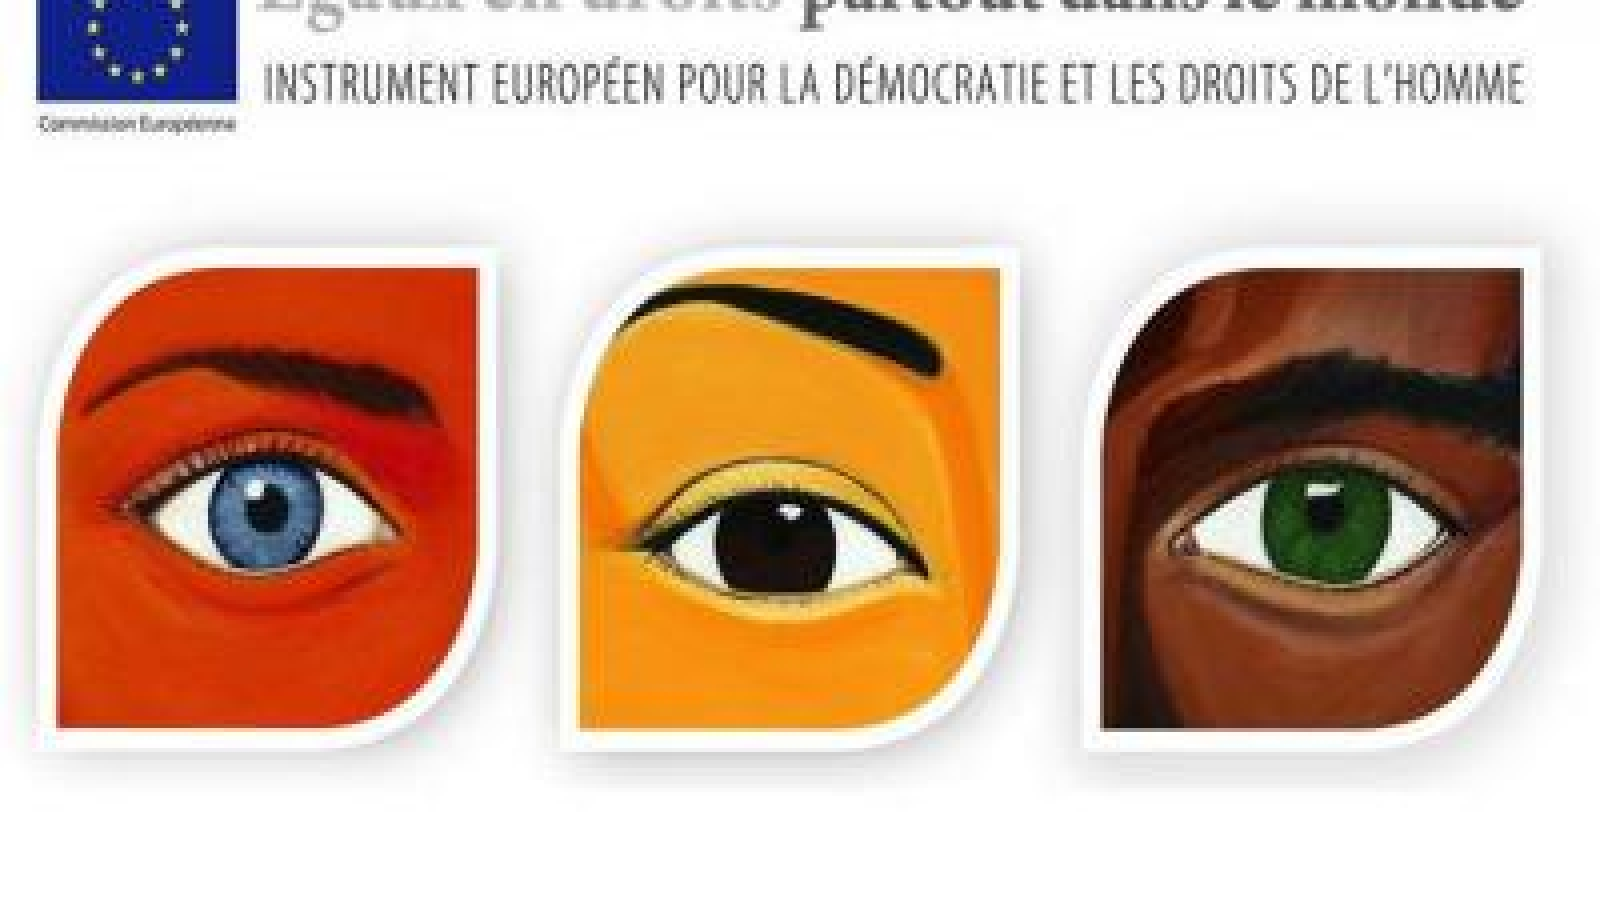 Tunisia: call for proposals to support civil society in promoting reforms and human rights